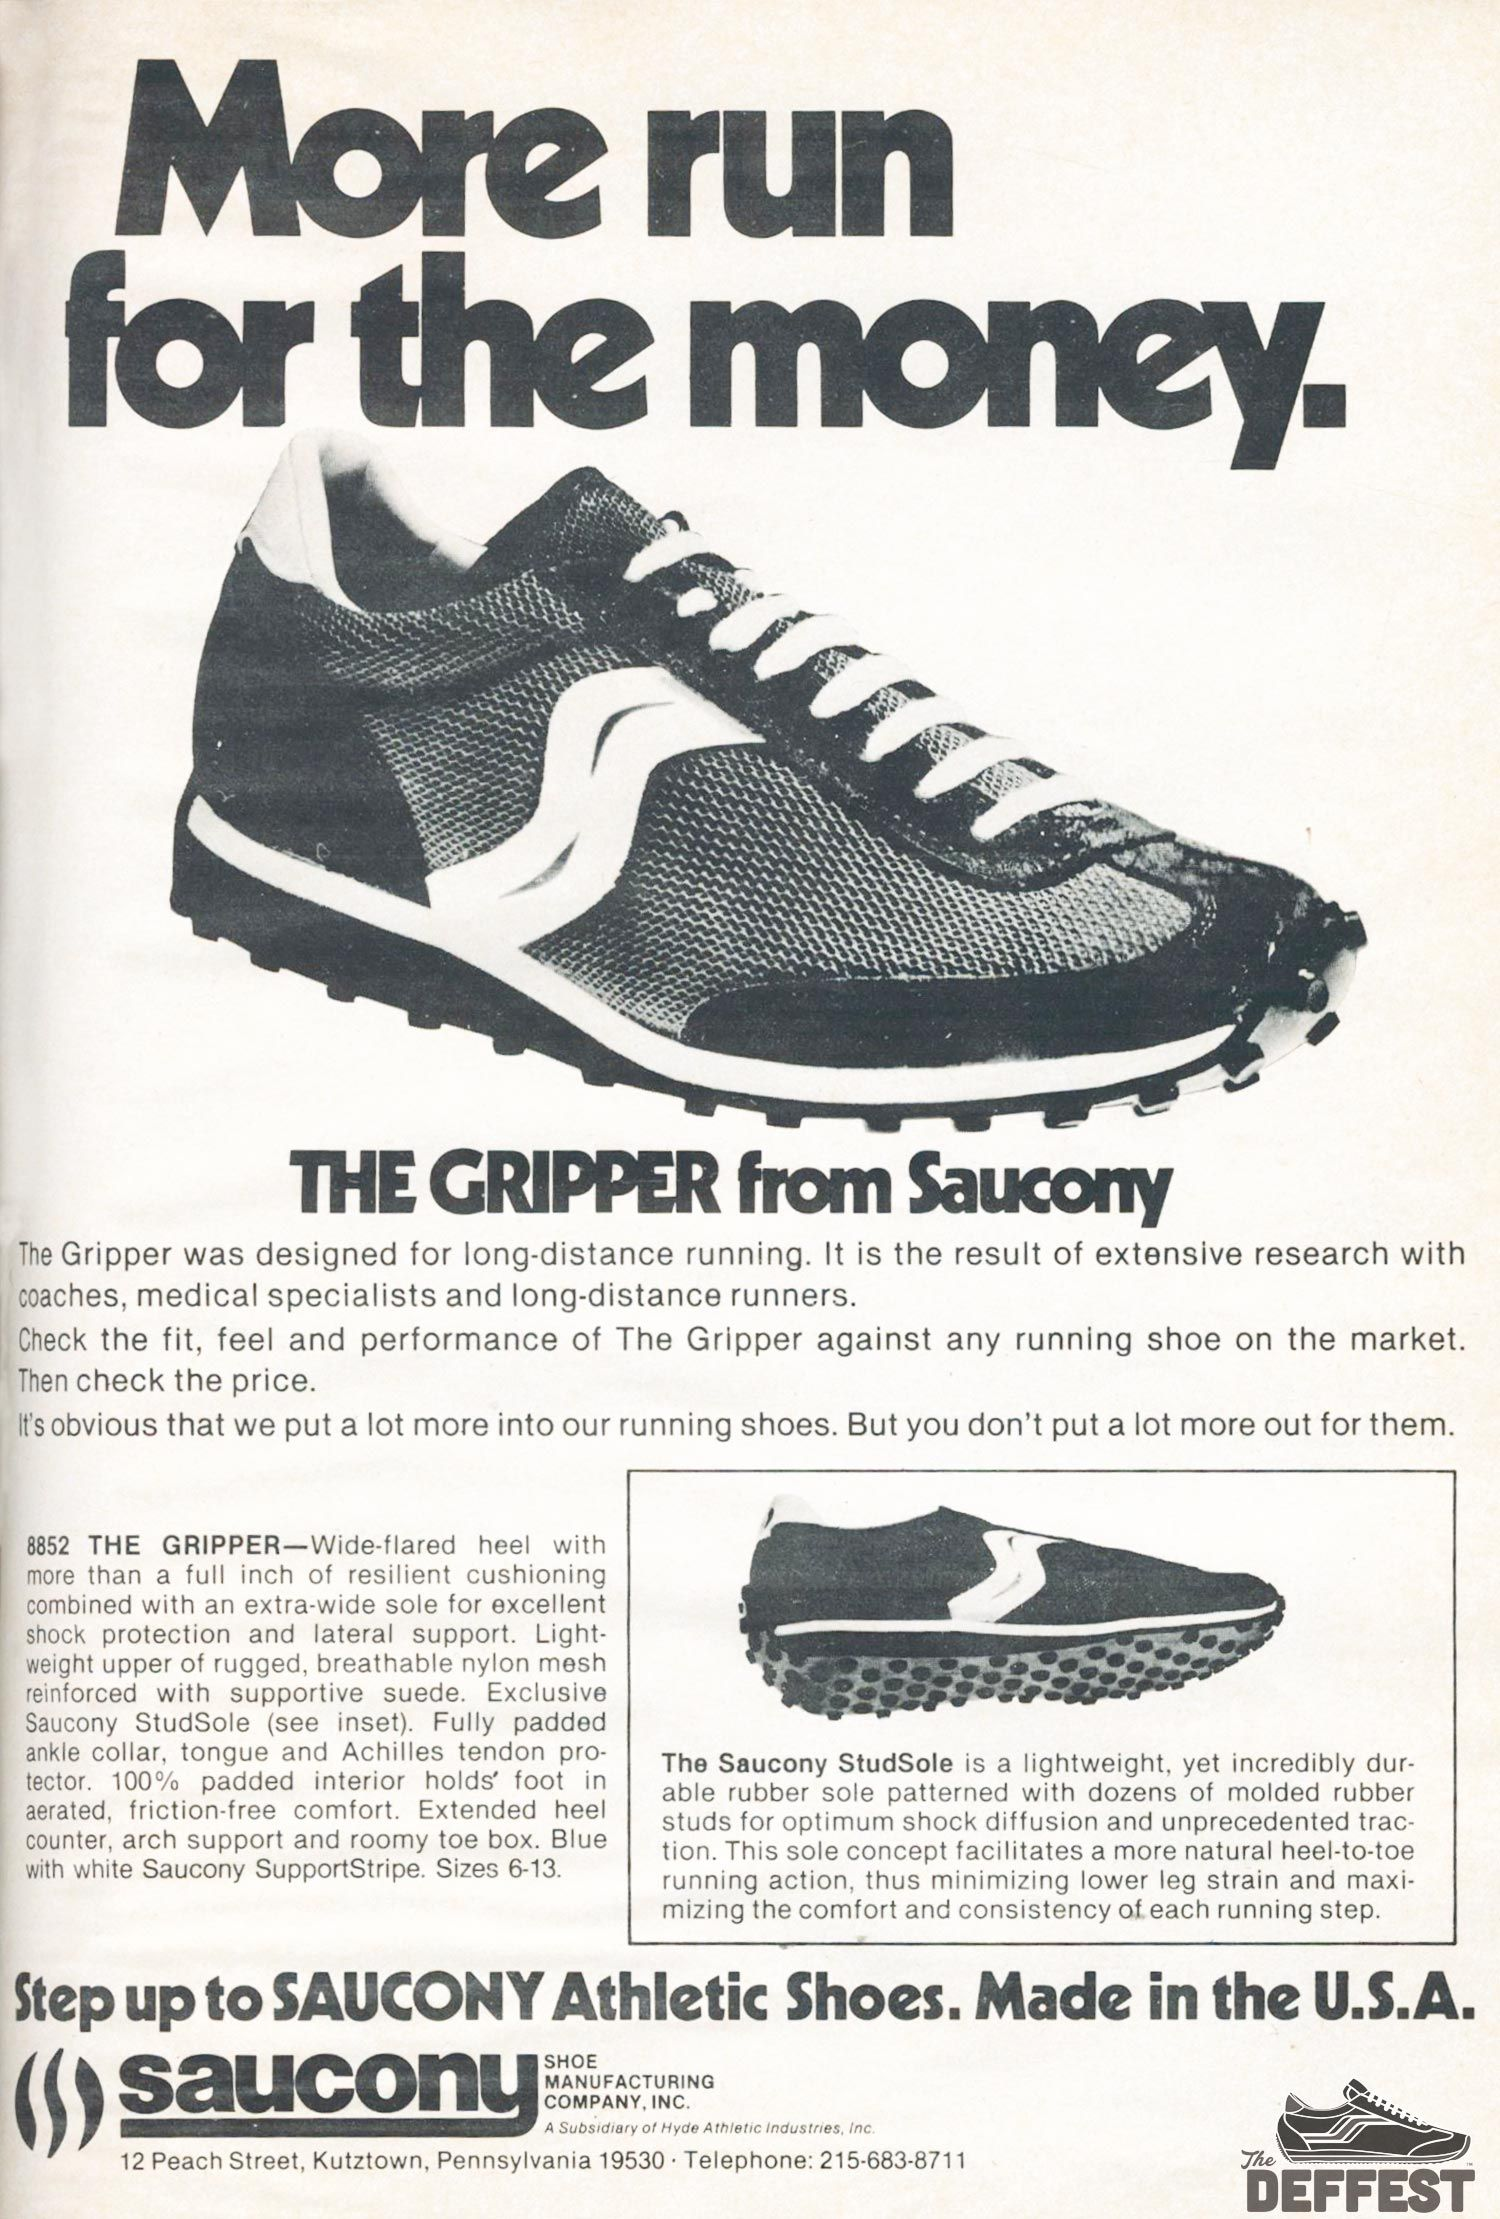 saucony shoes are made in